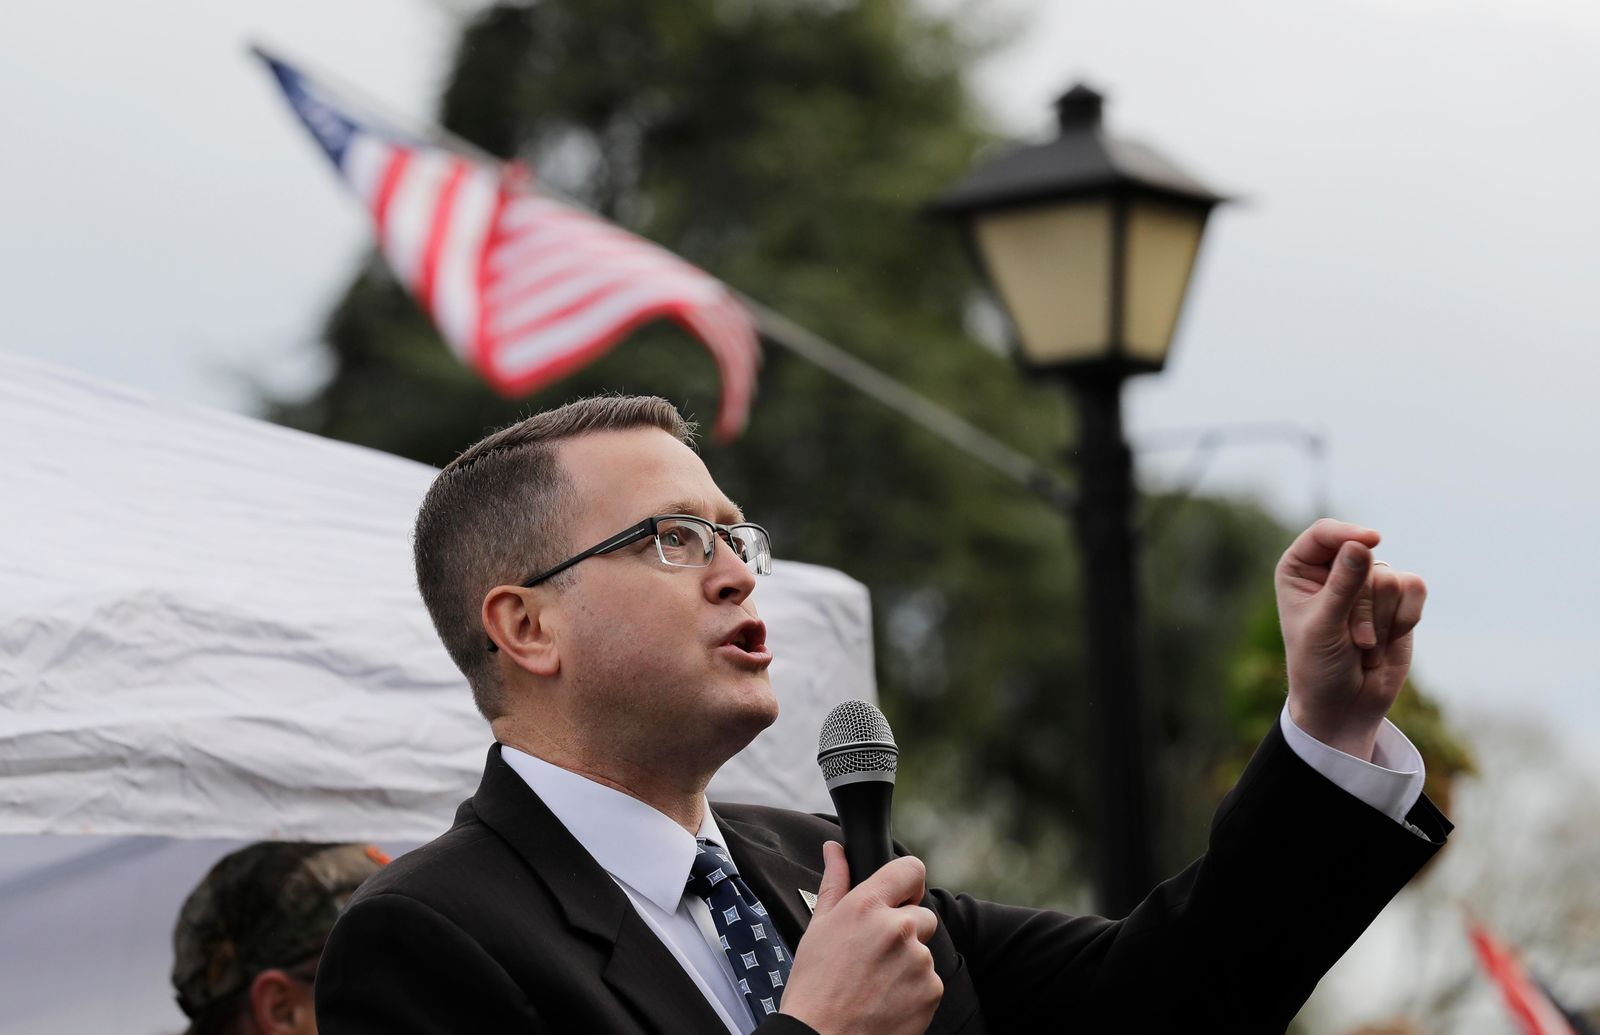 "FILE - In this Jan. 18, 2019, file photo, Rep. Matt Shea, R-Spokane Valley, speaks at a gun-rights rally at the Capitol in Olympia, Wash. Recently published internet chats from 2017 show Shea and three other men discussing confronting ""leftists"" with a variety of tactics, including violence, surveillance and intimidation. (AP Photo/Ted S. Warren, File)"